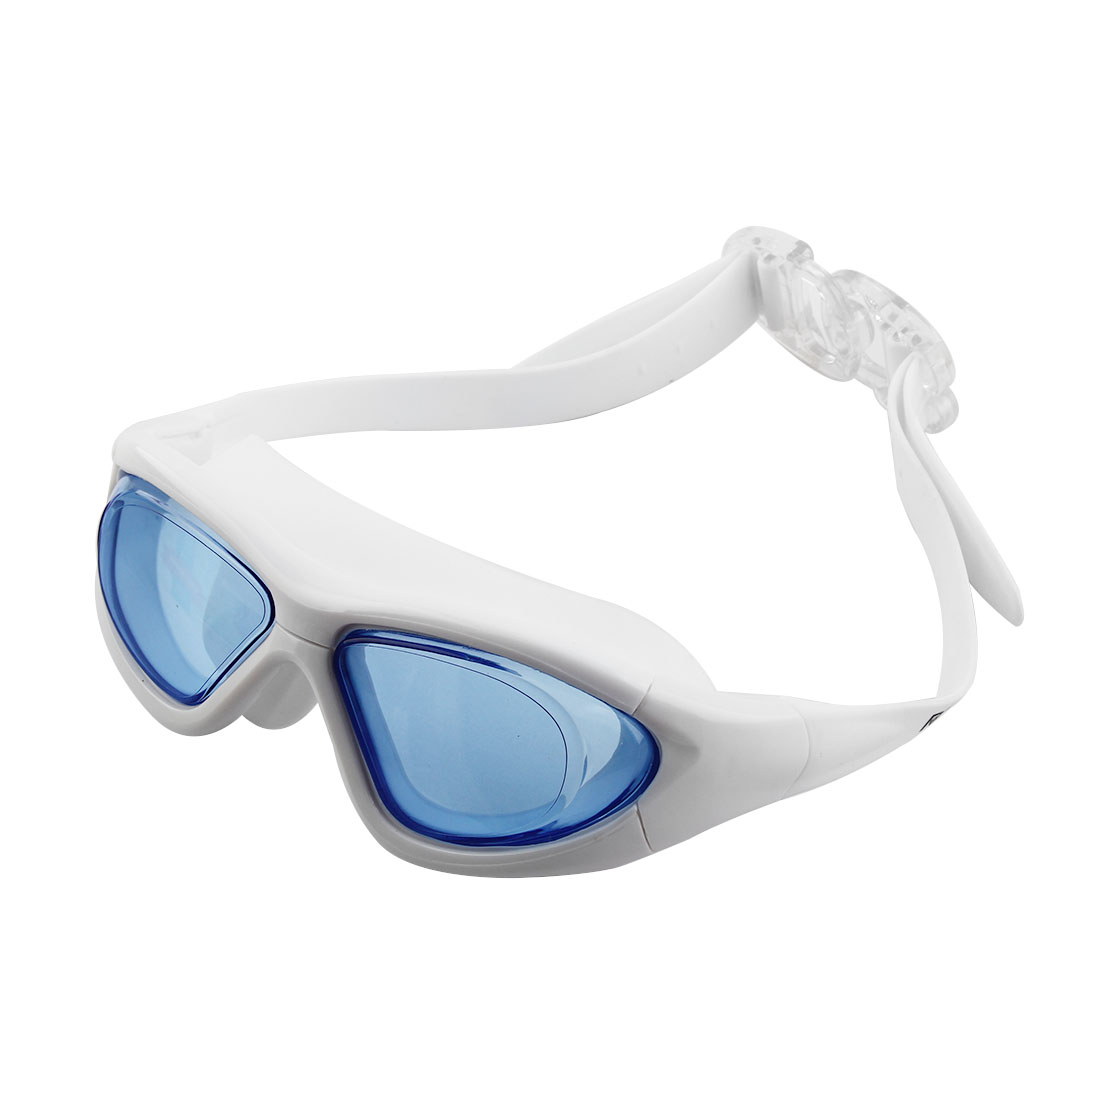 Clear Wide Vision Anti Fog Adjustable Belt Swim Glasses Swimming Goggles Blue w Storage Case for Adult Men Women